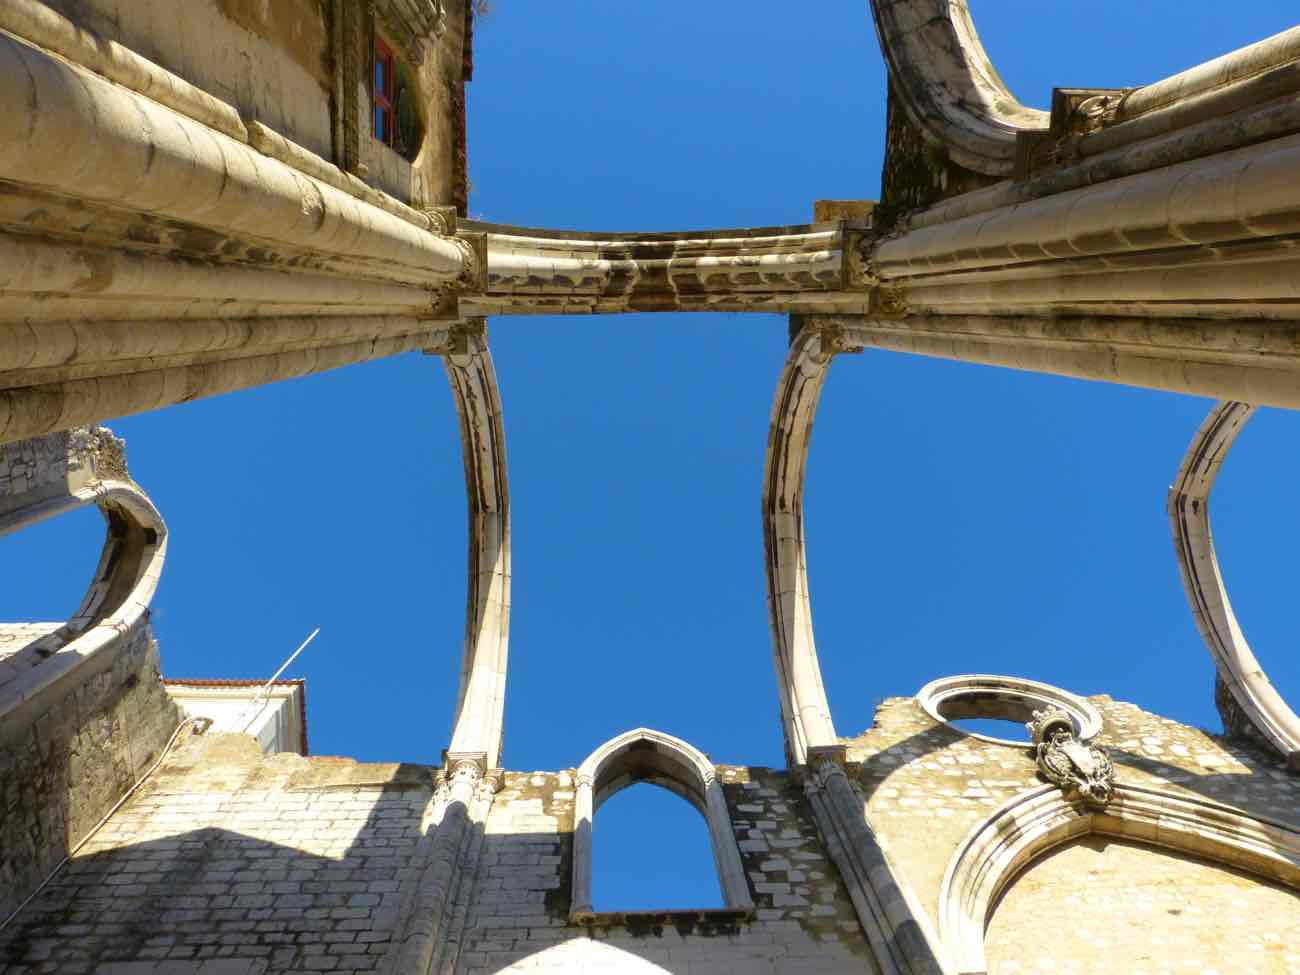 lisbon itinerary 3 days convento carmo what to see and do lisbon